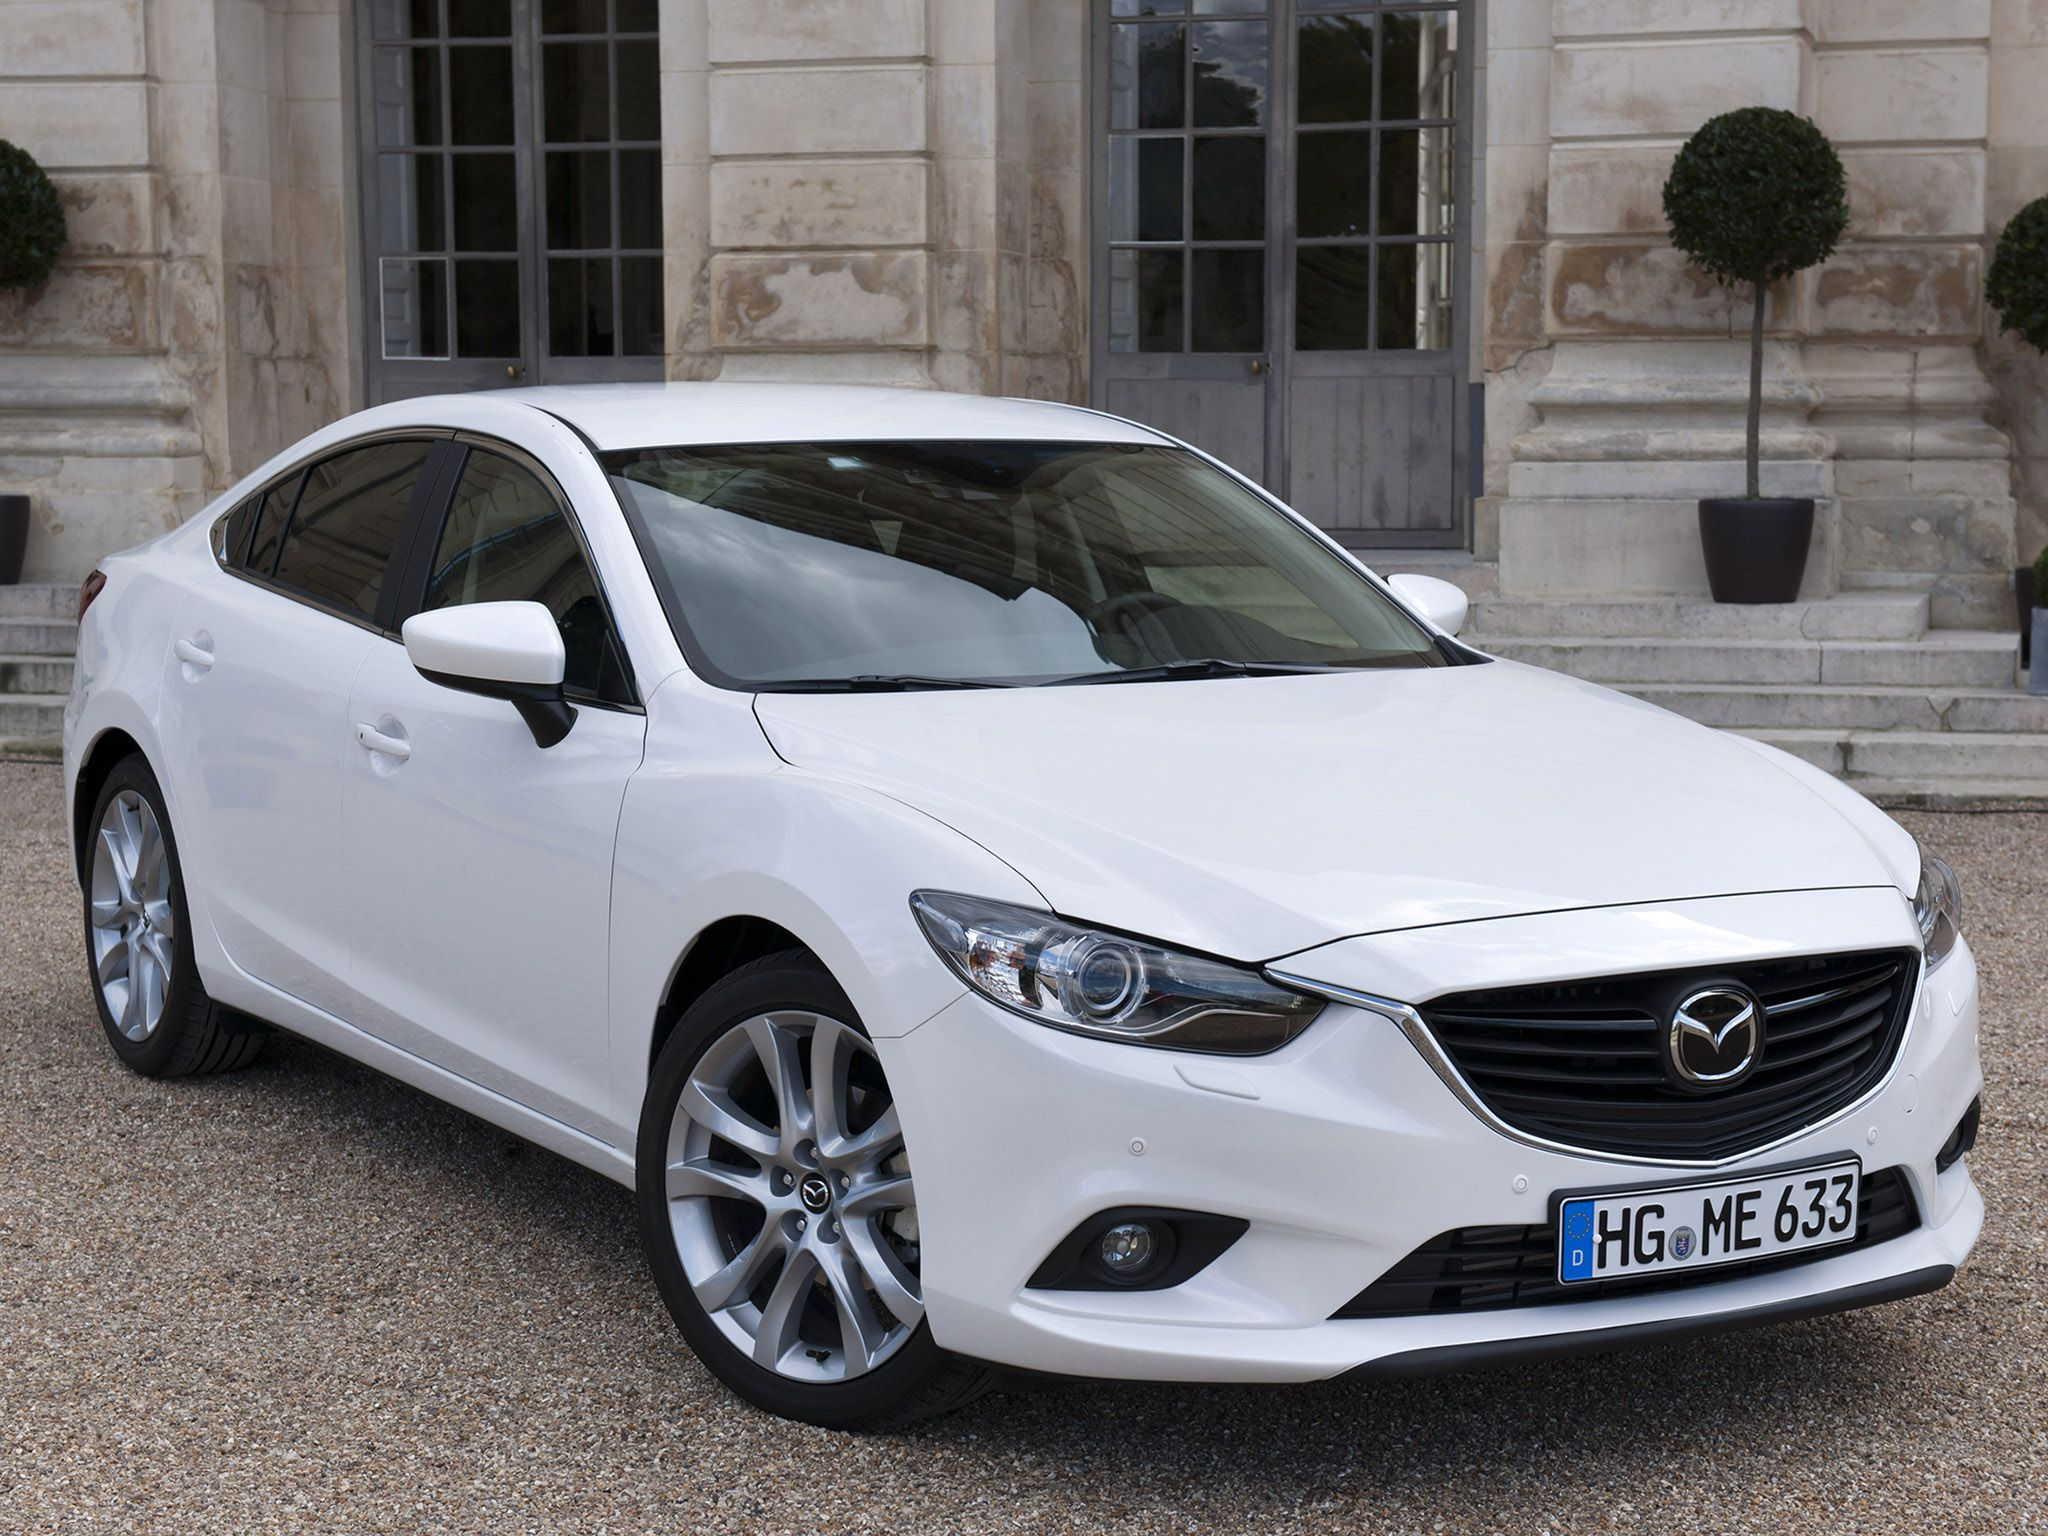 2015 mazda 6 coupe cars pinterest mazda and cars 2015 mazda 6 coupe thecheapjerseys Choice Image